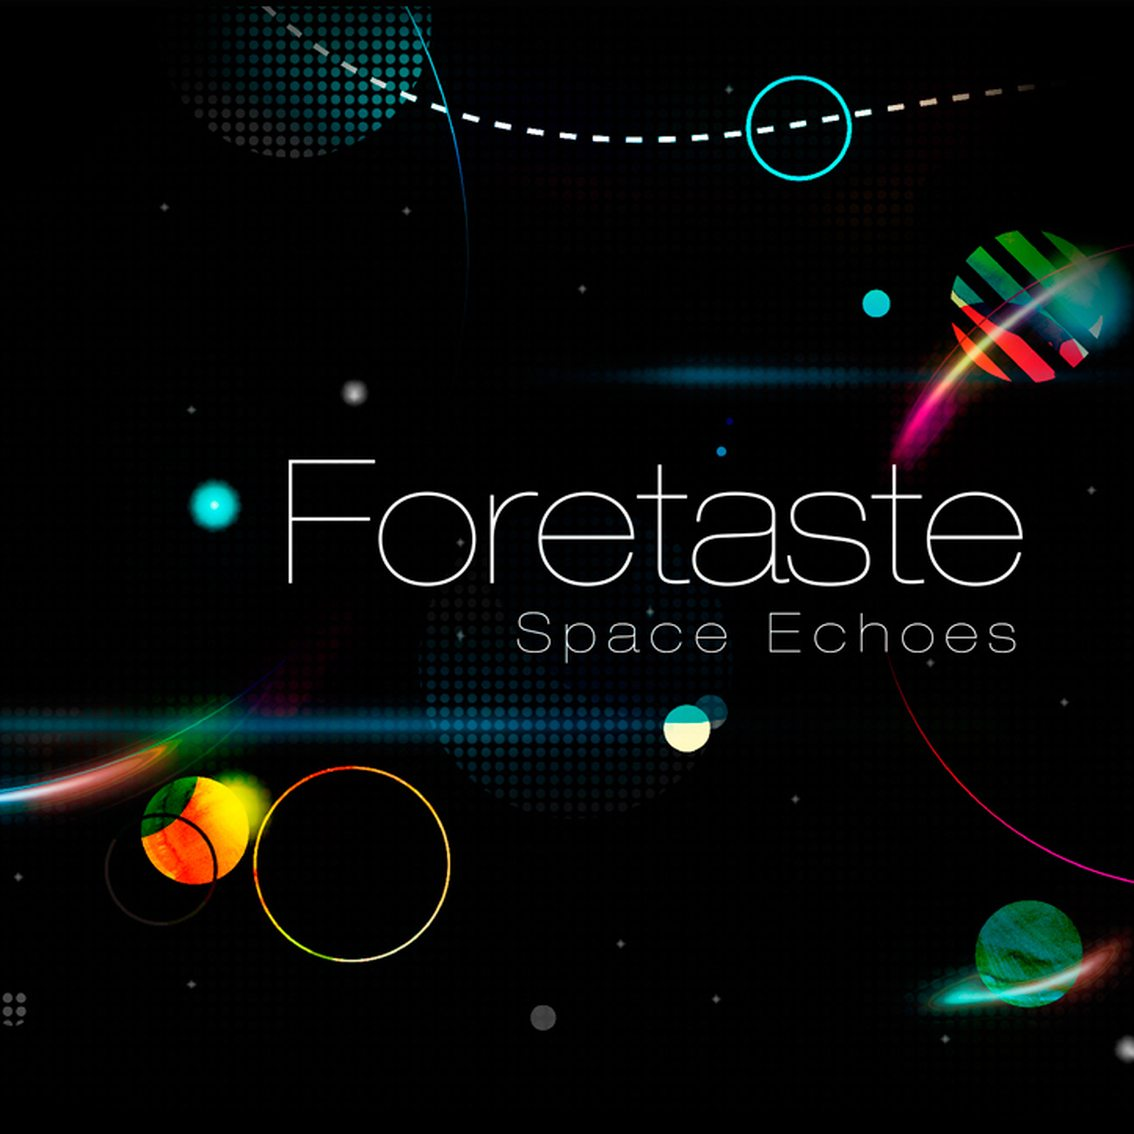 Listen to an exclusive preview of the new 11-track album by one of France's best electropop product Foretaste!